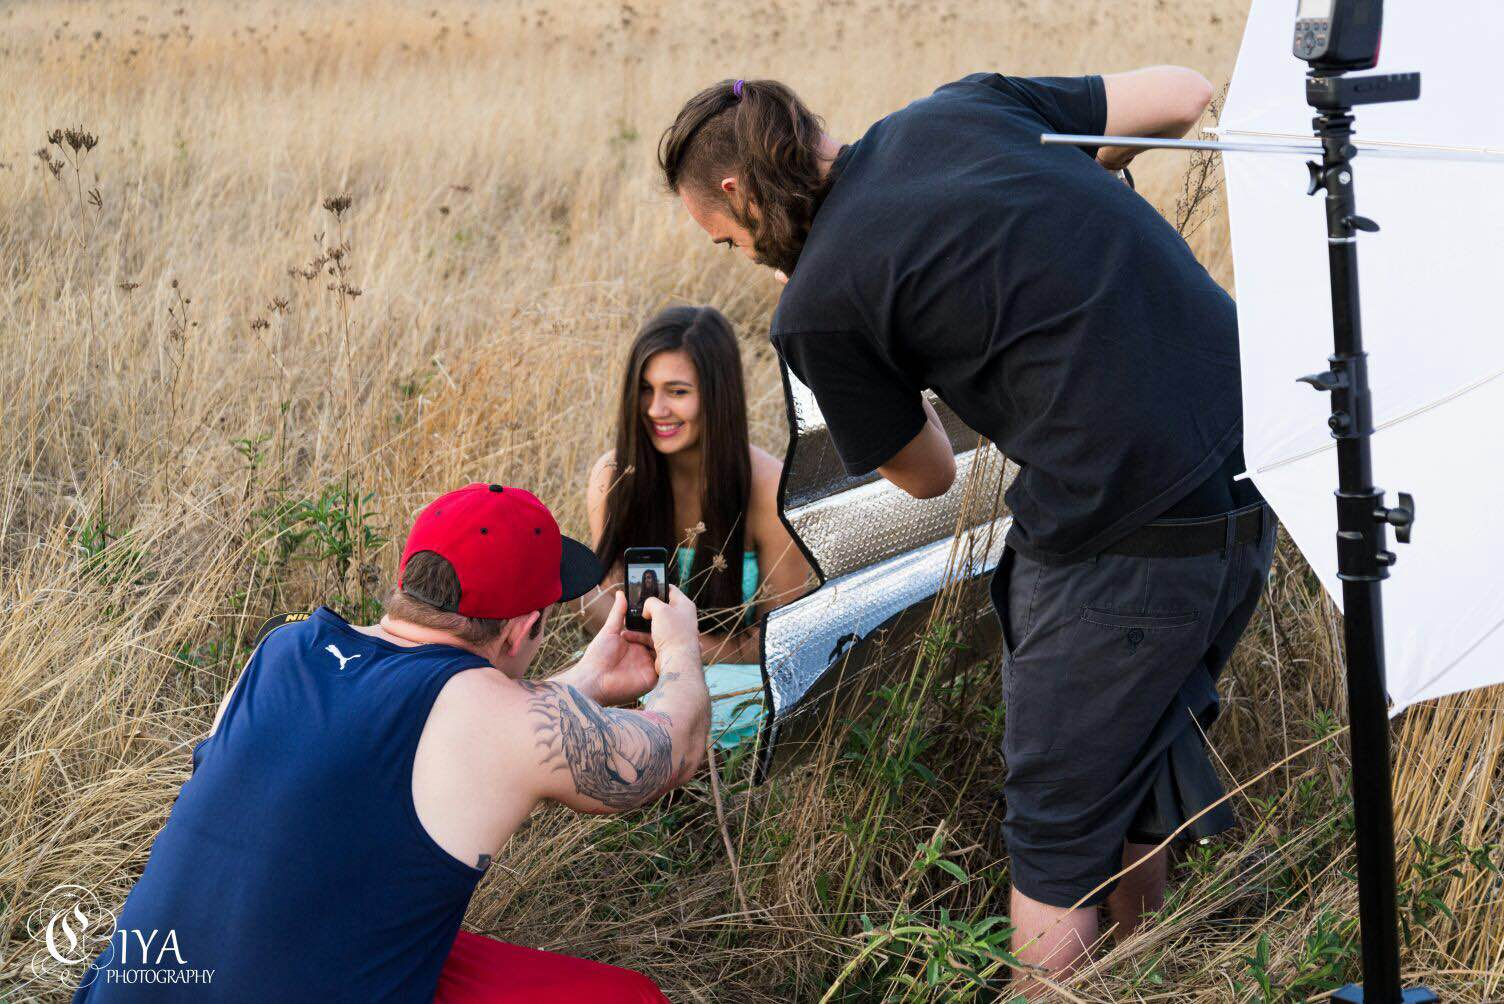 Bts of my the above shot, thanks to Tshepo for this. have a look at her work here  https://www.facebook.com/ciyaphotography